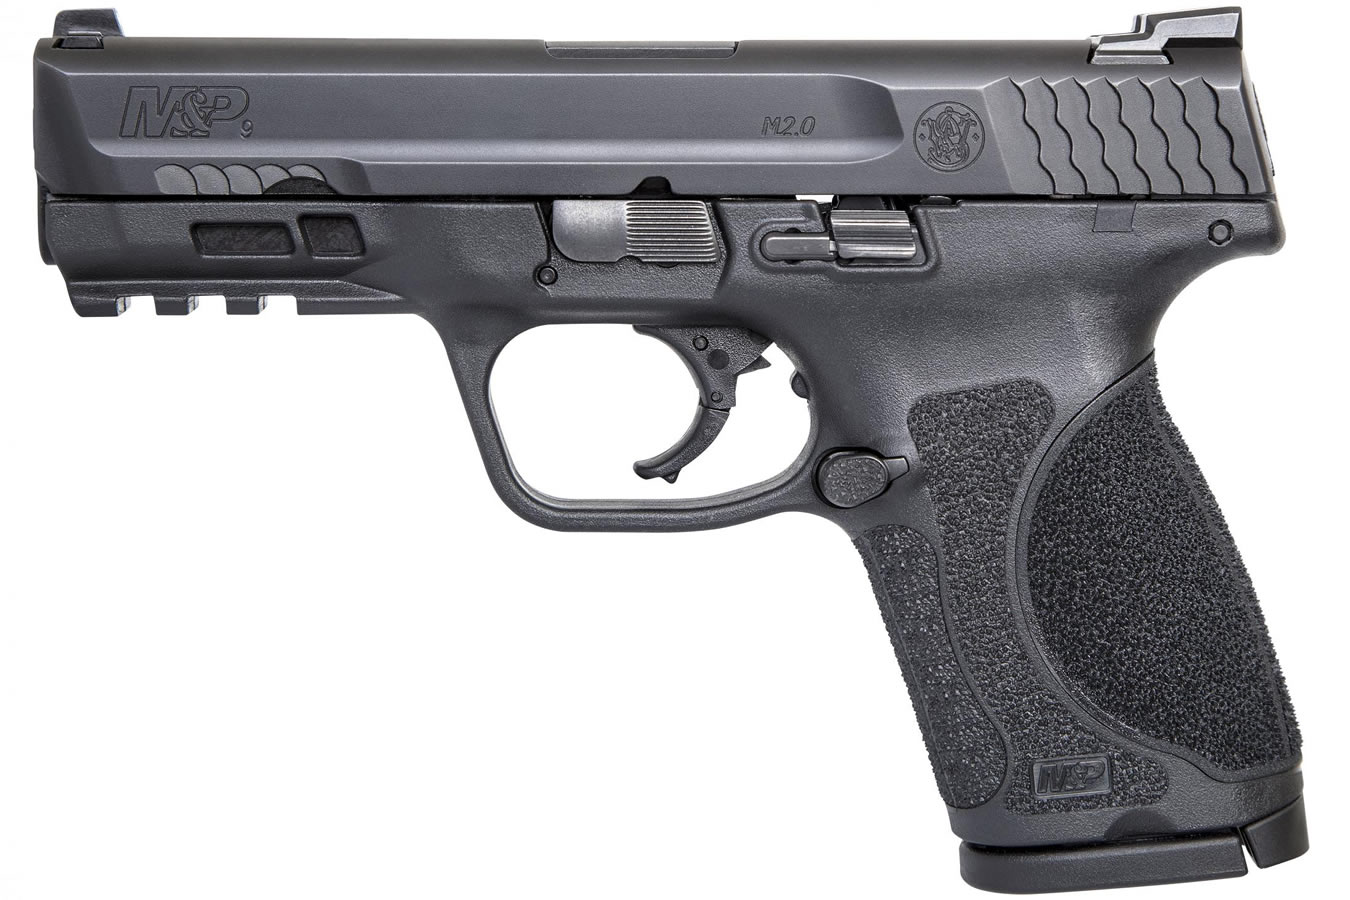 MP9 M2.0 COMPACT 9MM W/O THUMB SAFETY